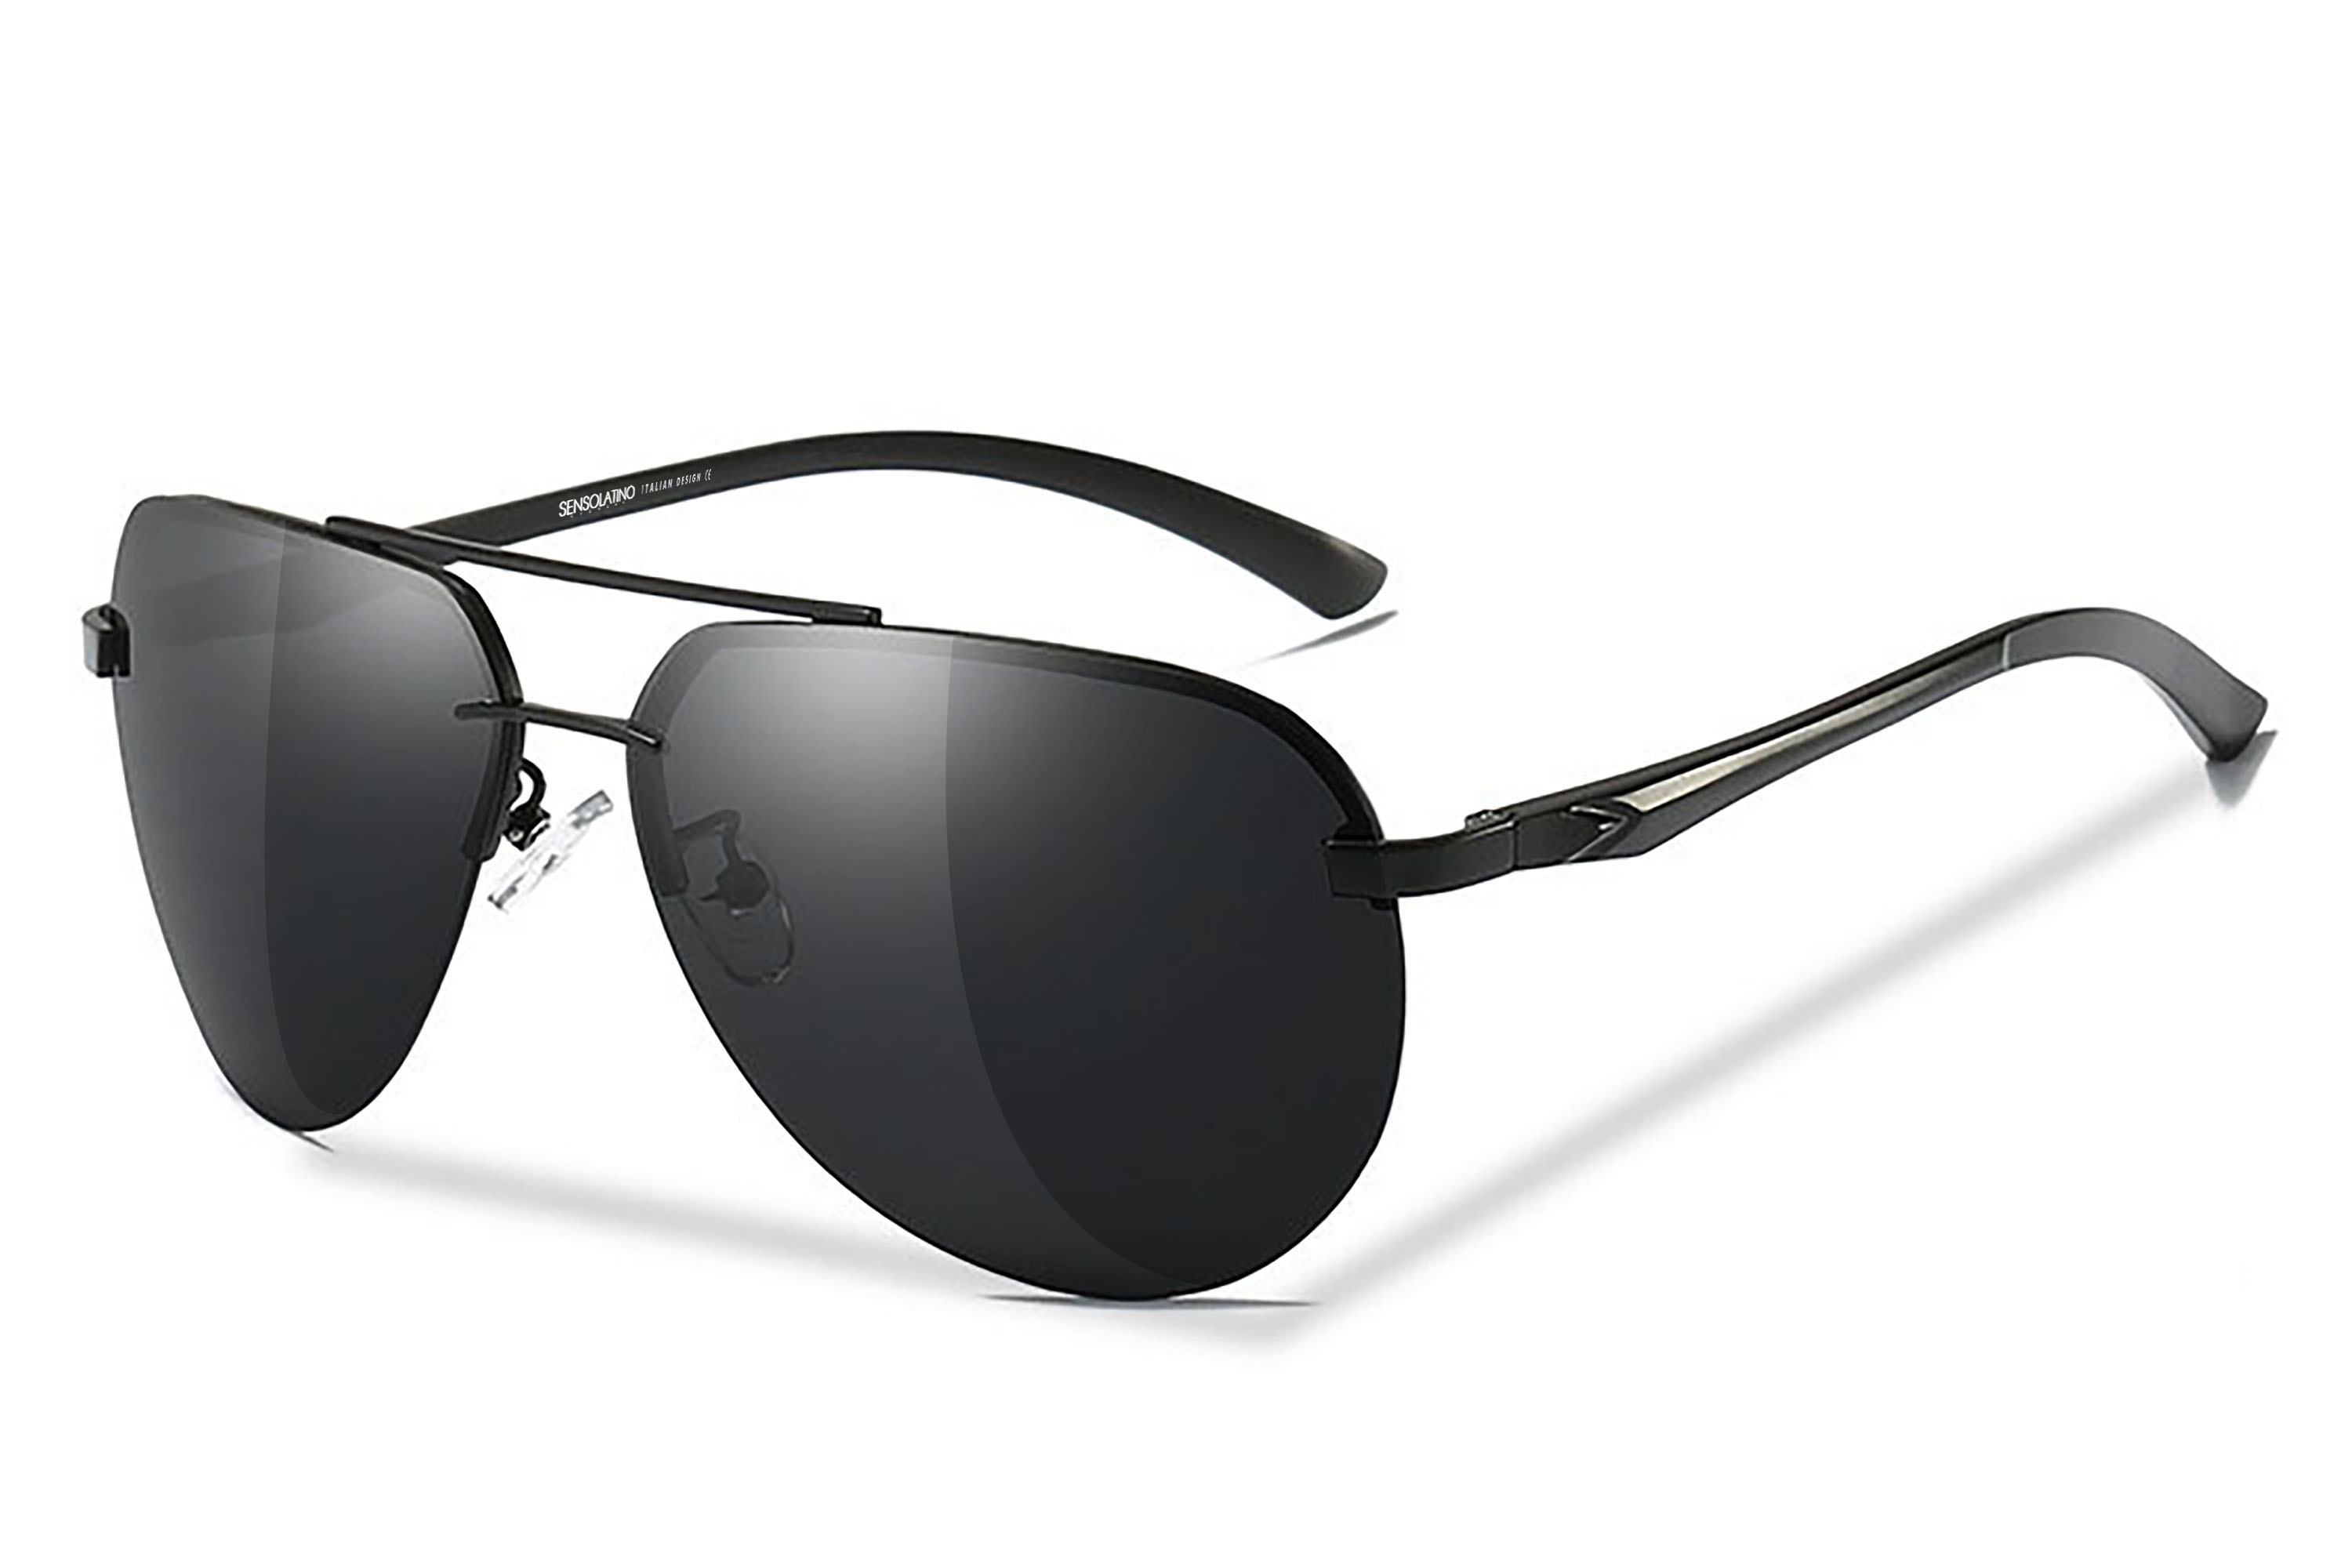 44db28db79 SLMED-01 0754495689010 SENSOLATINO SERIES MEDINA BLACK FRAME WITH BLACK  POLARIZED LENSES L